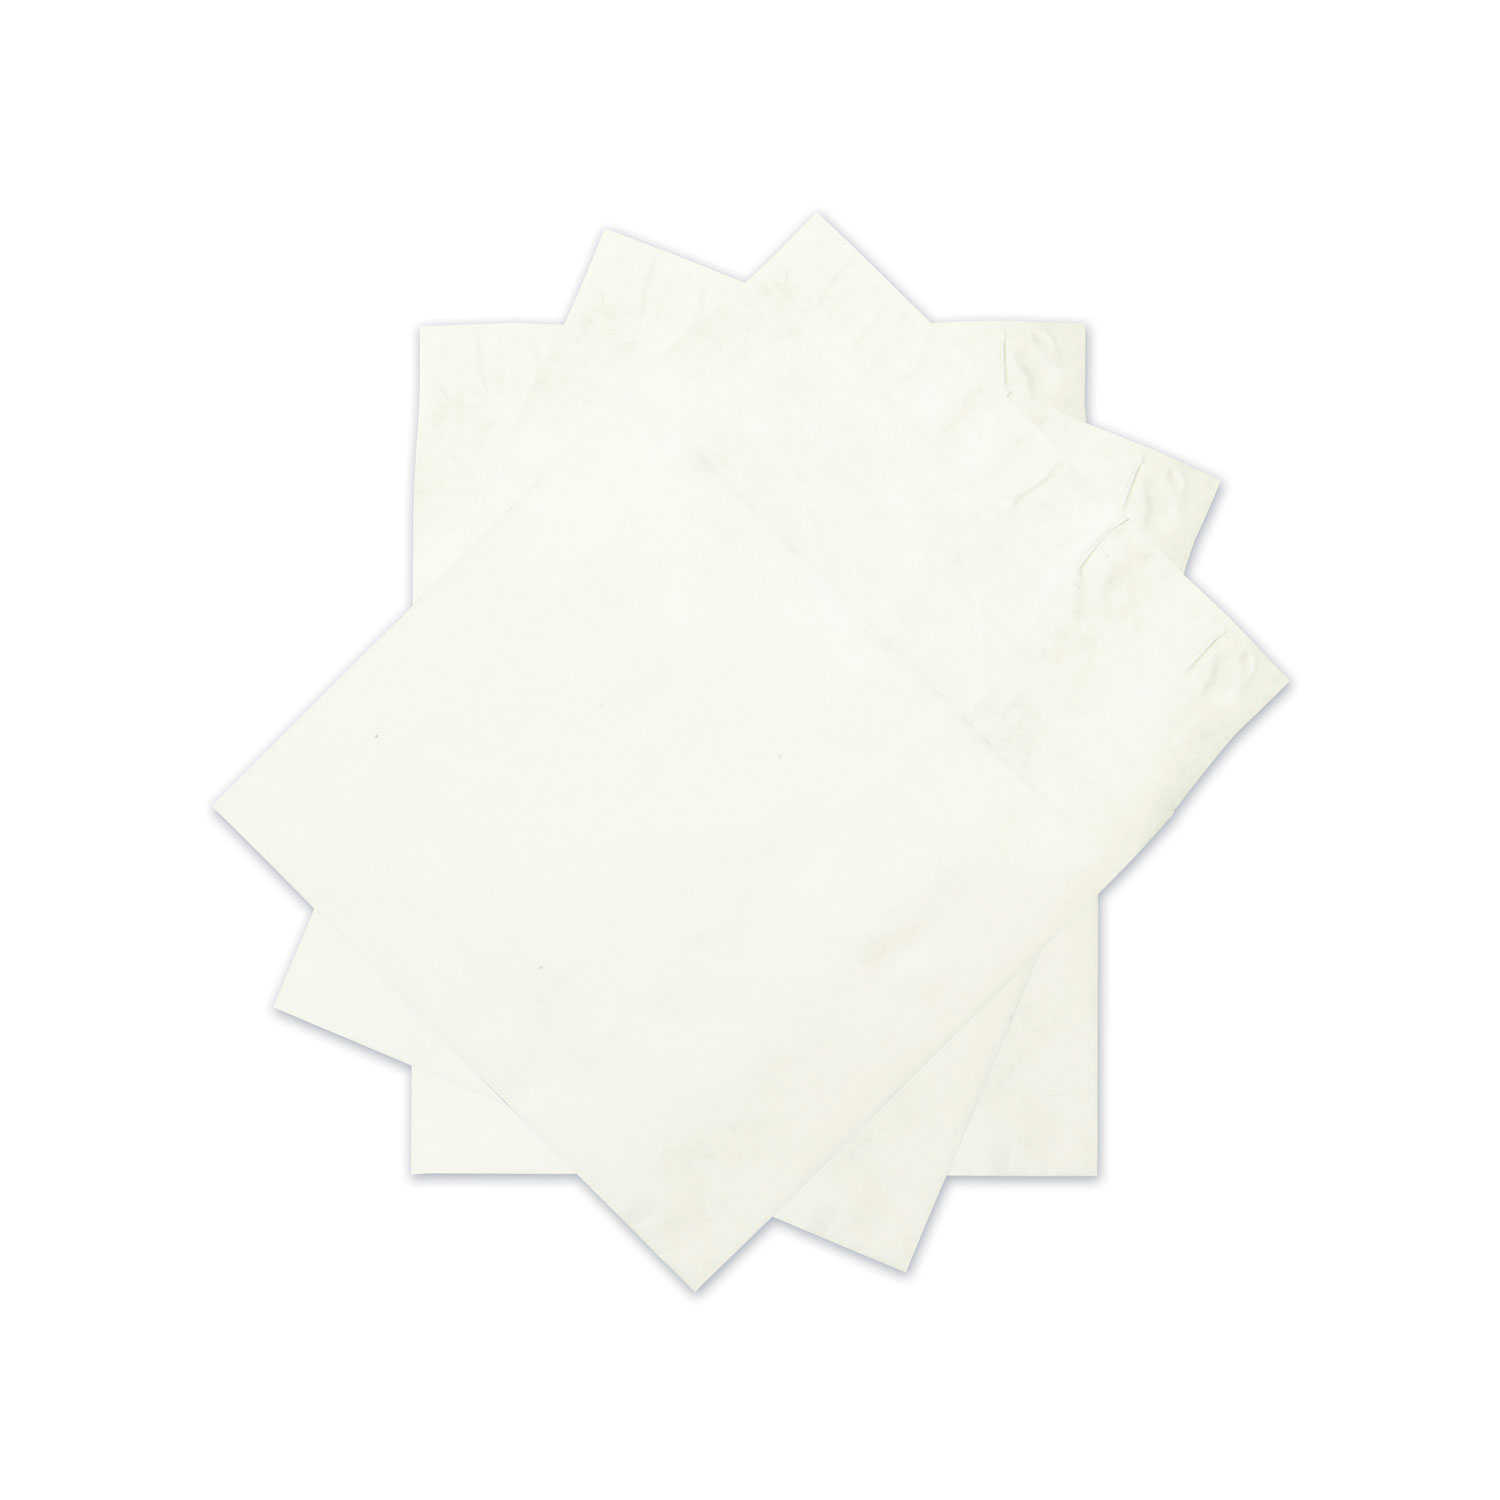 Open Side Expansion Mailers, DuPont Tyvek, #15 1/2, Cheese Blade Flap, Redi-Strip Closure, 12 x 16, White, 50/Carton